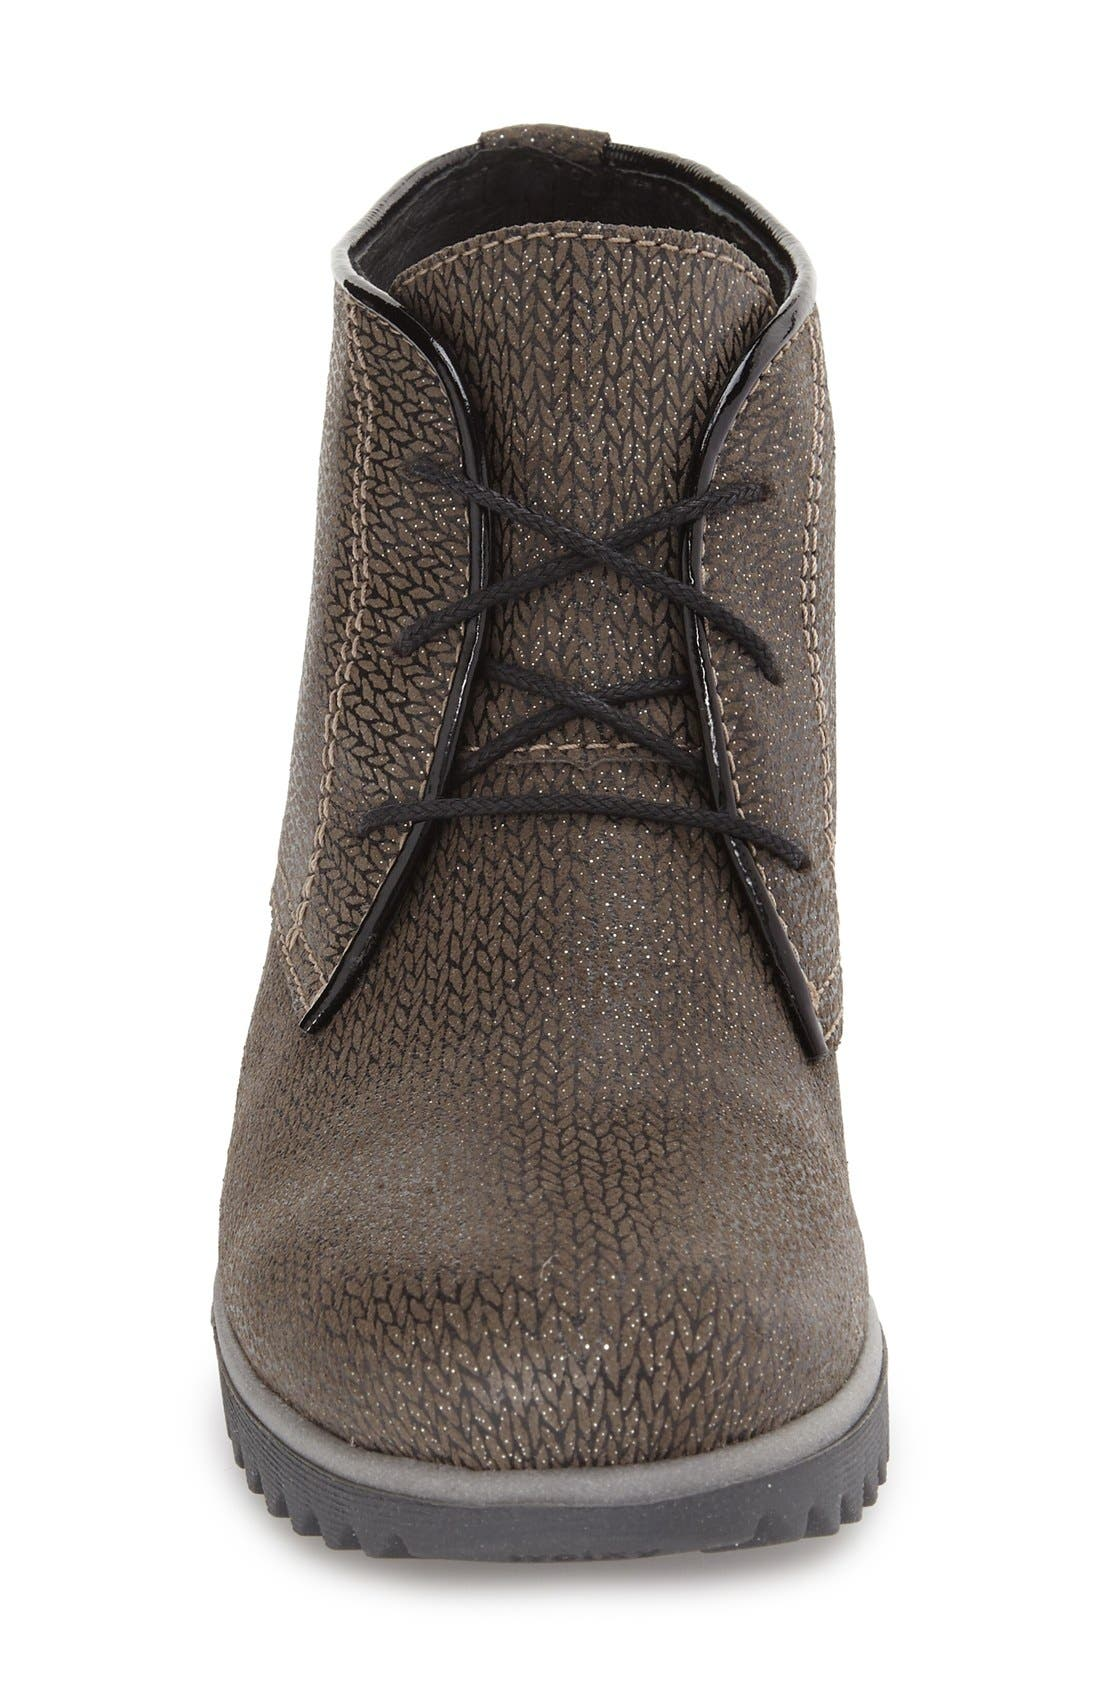 'Dusty' Hidden Wedge Bootie,                             Alternate thumbnail 3, color,                             TAUPE MALIBU SUEDE